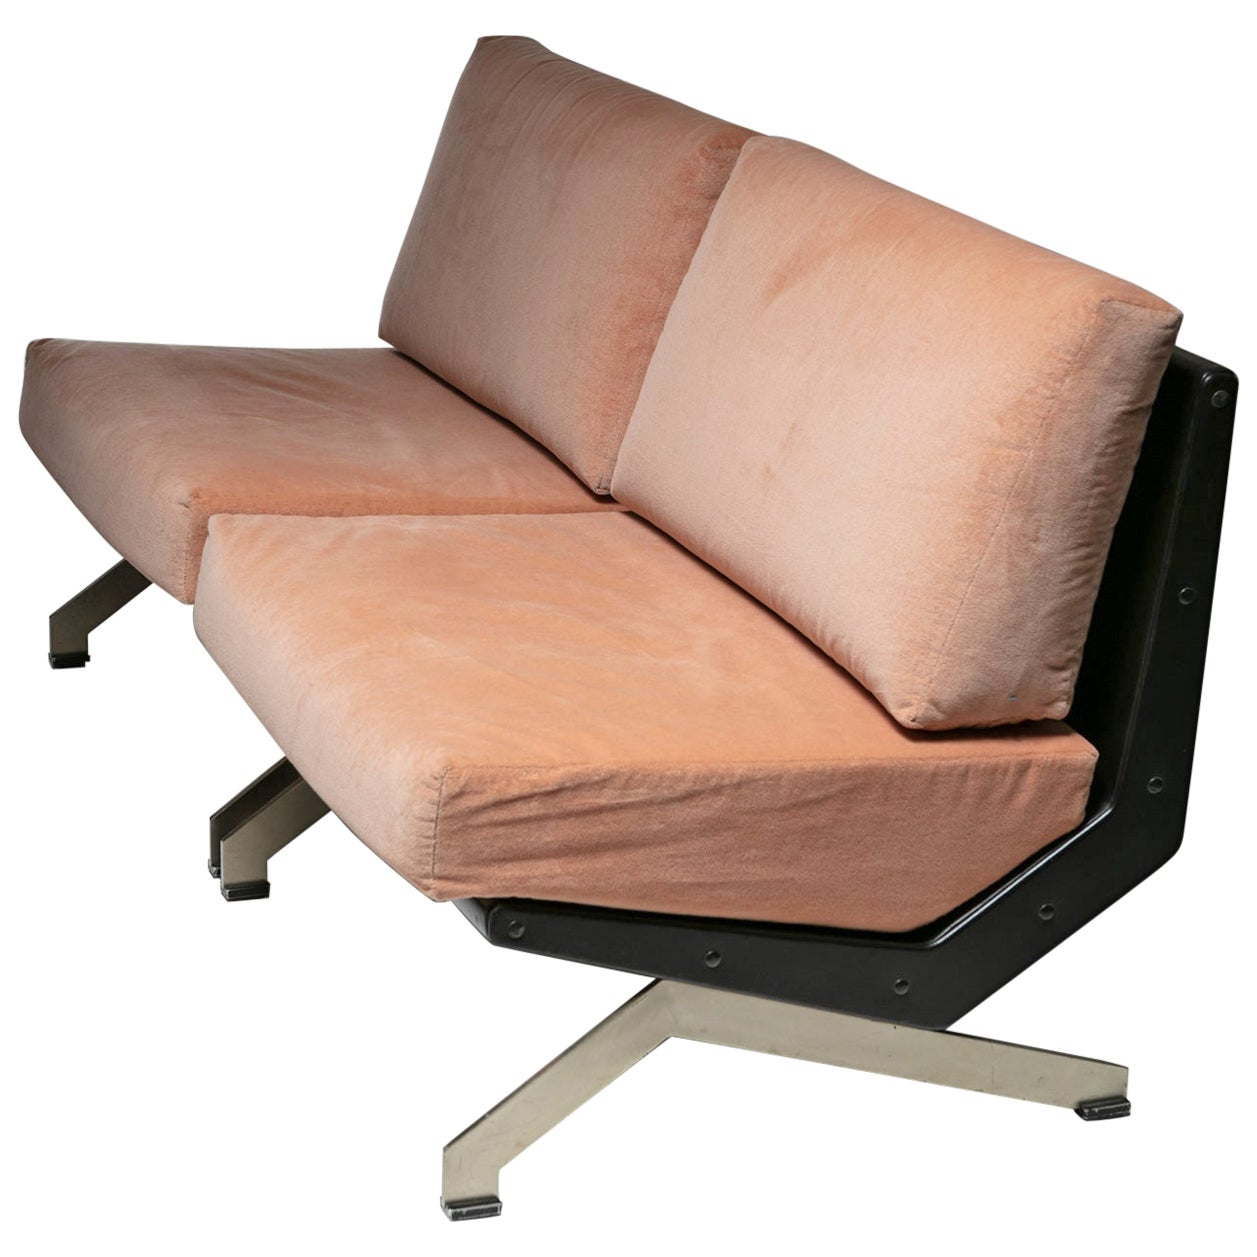 Pair of Lounge Chairs by Gianni Moscatelli for Formanova